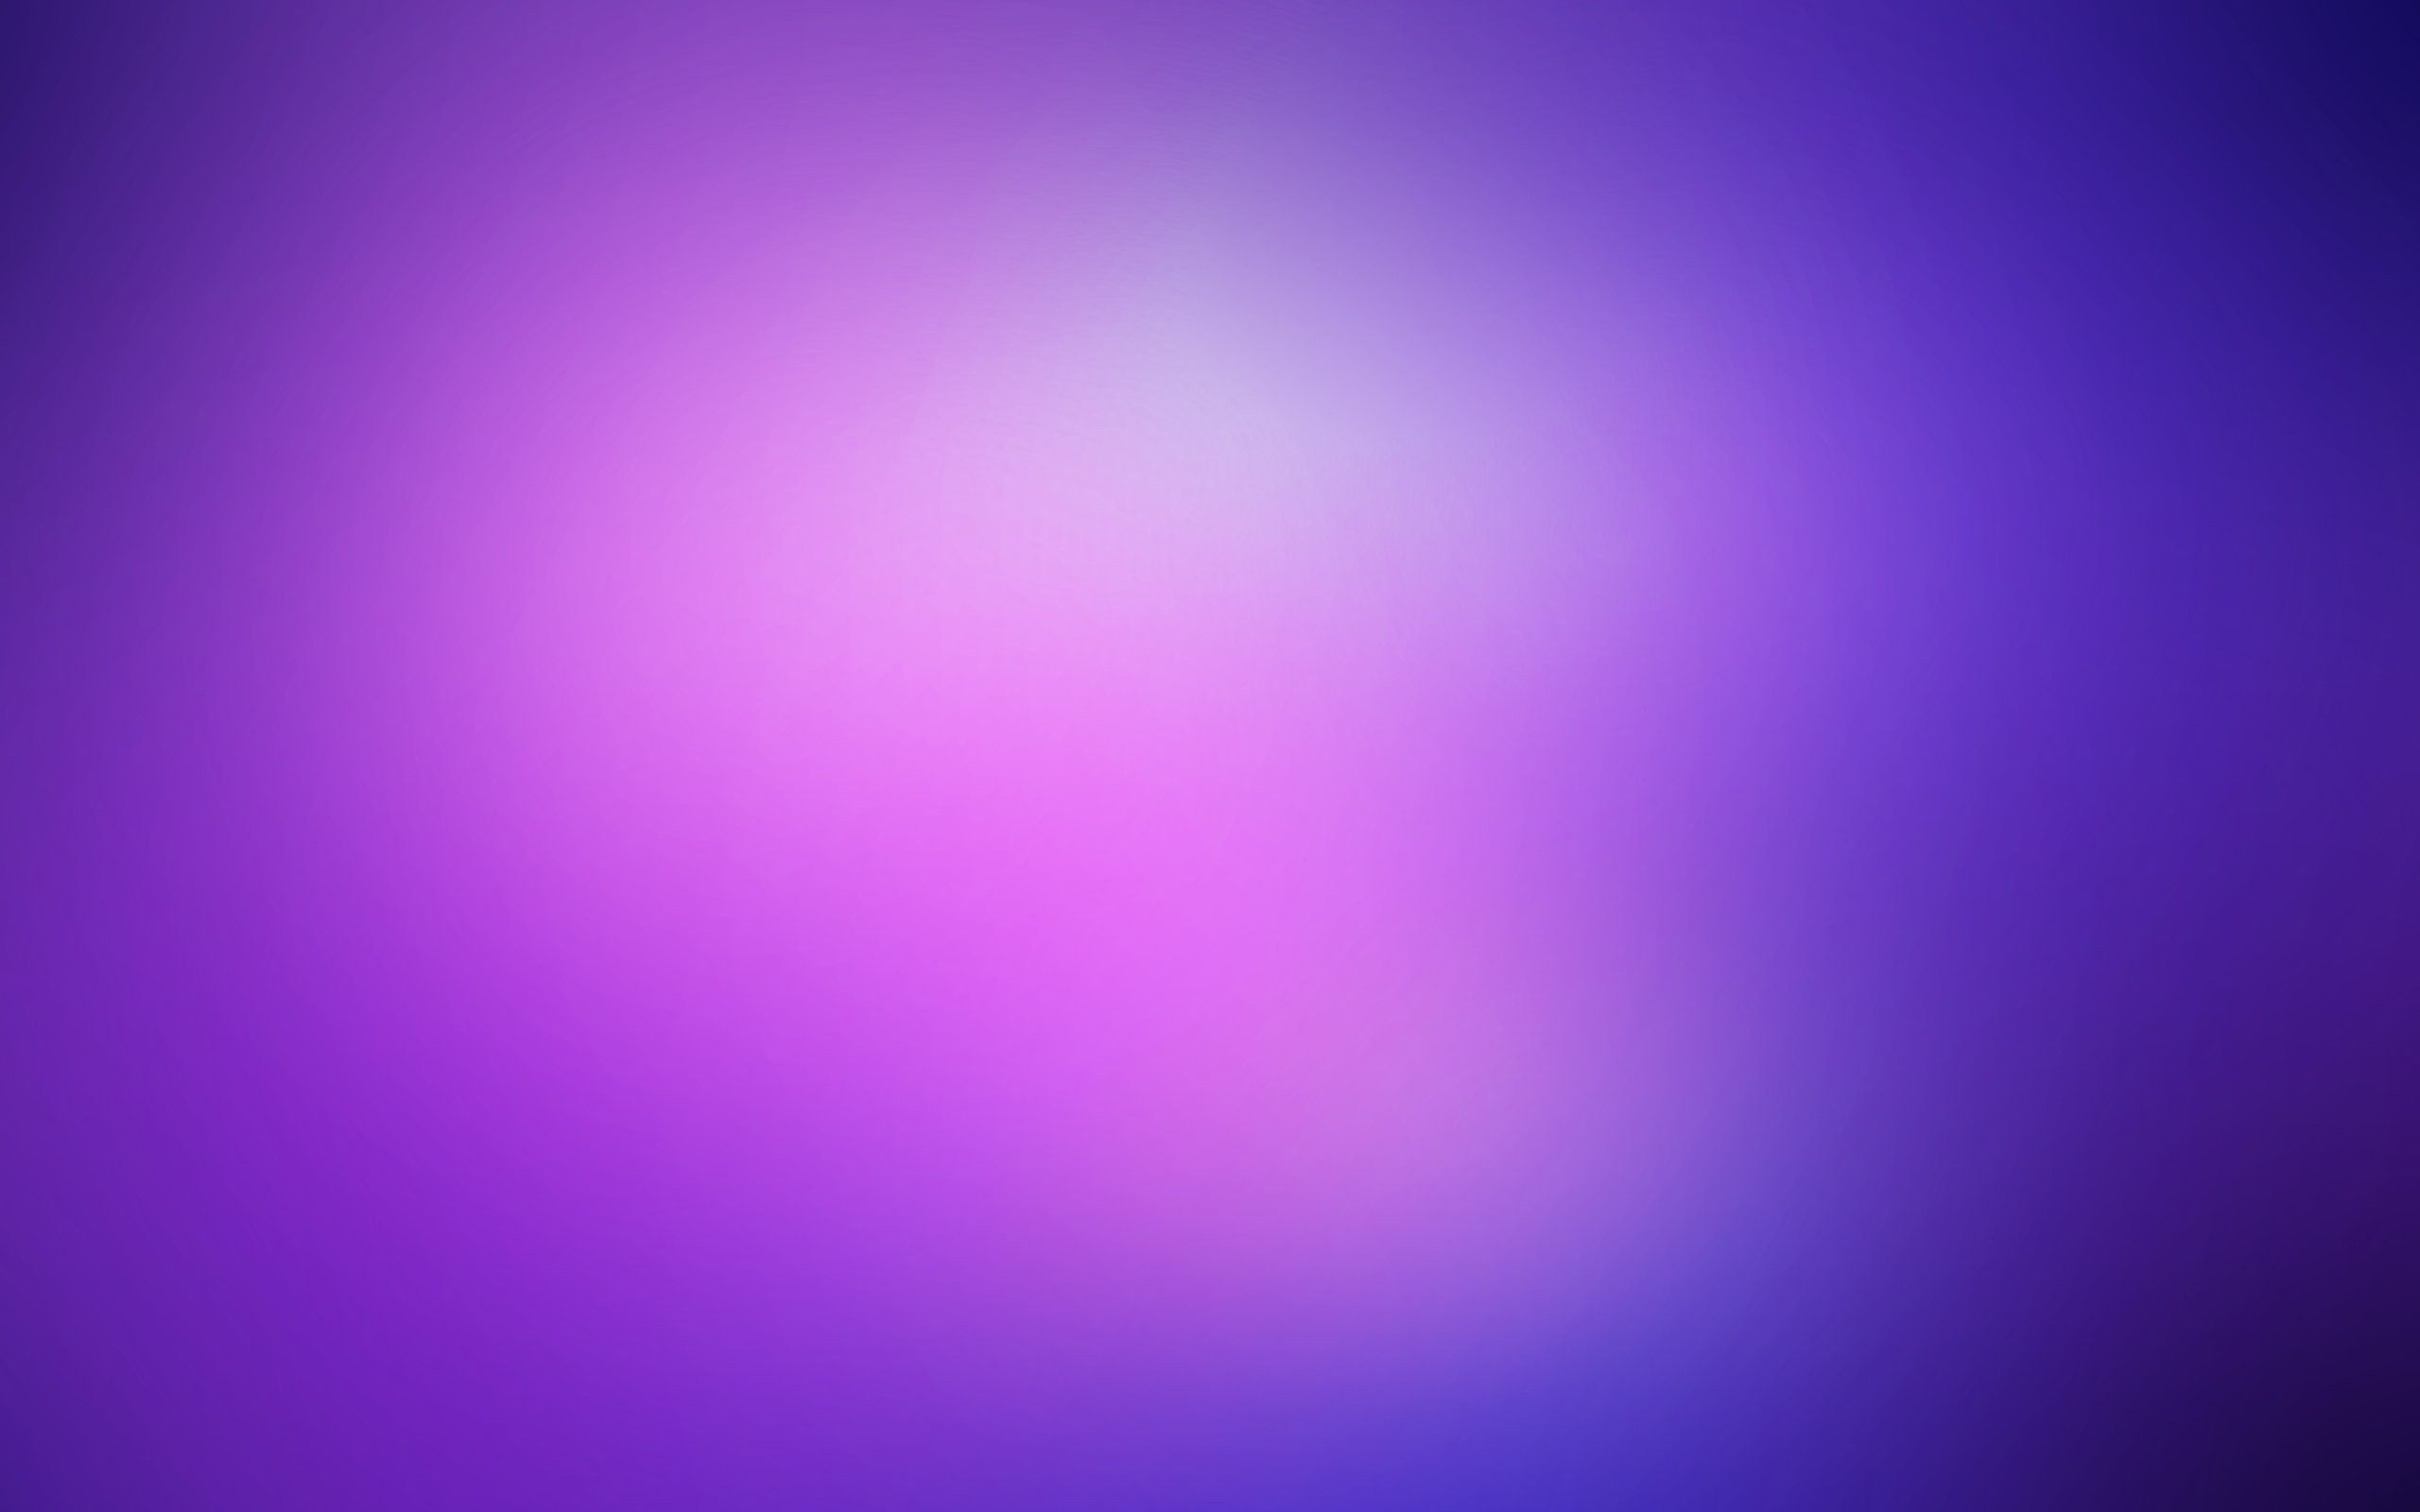 10 Latest Hd Wallpapers Solid Colors Full Hd 19201080 For Pc